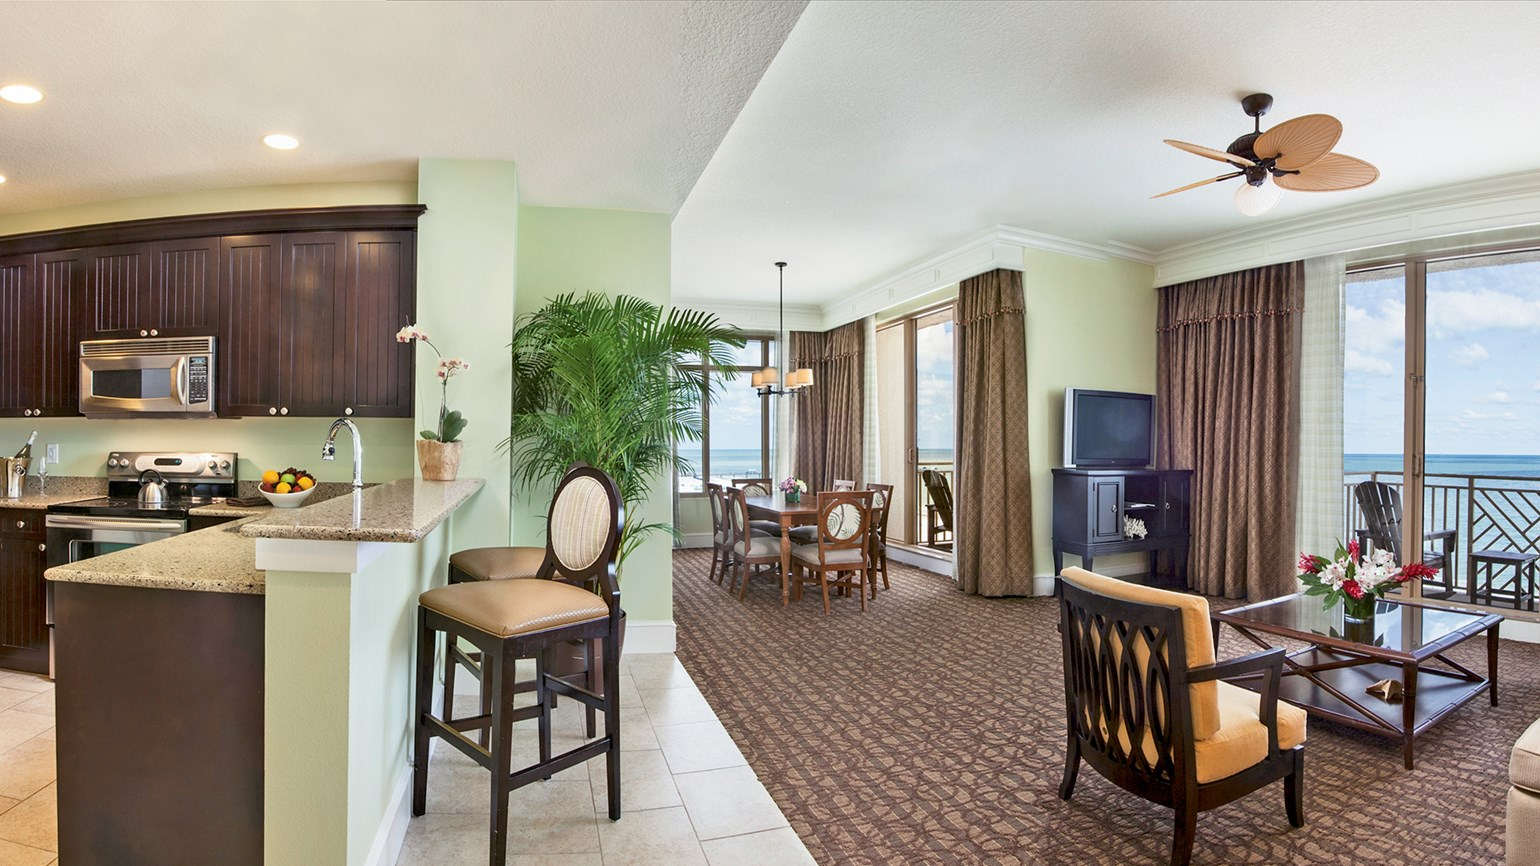 A two-bedroom Sunset Deluxe Kitchen suite at the Sandpearl Resort in Clearwater Beach, Fla.